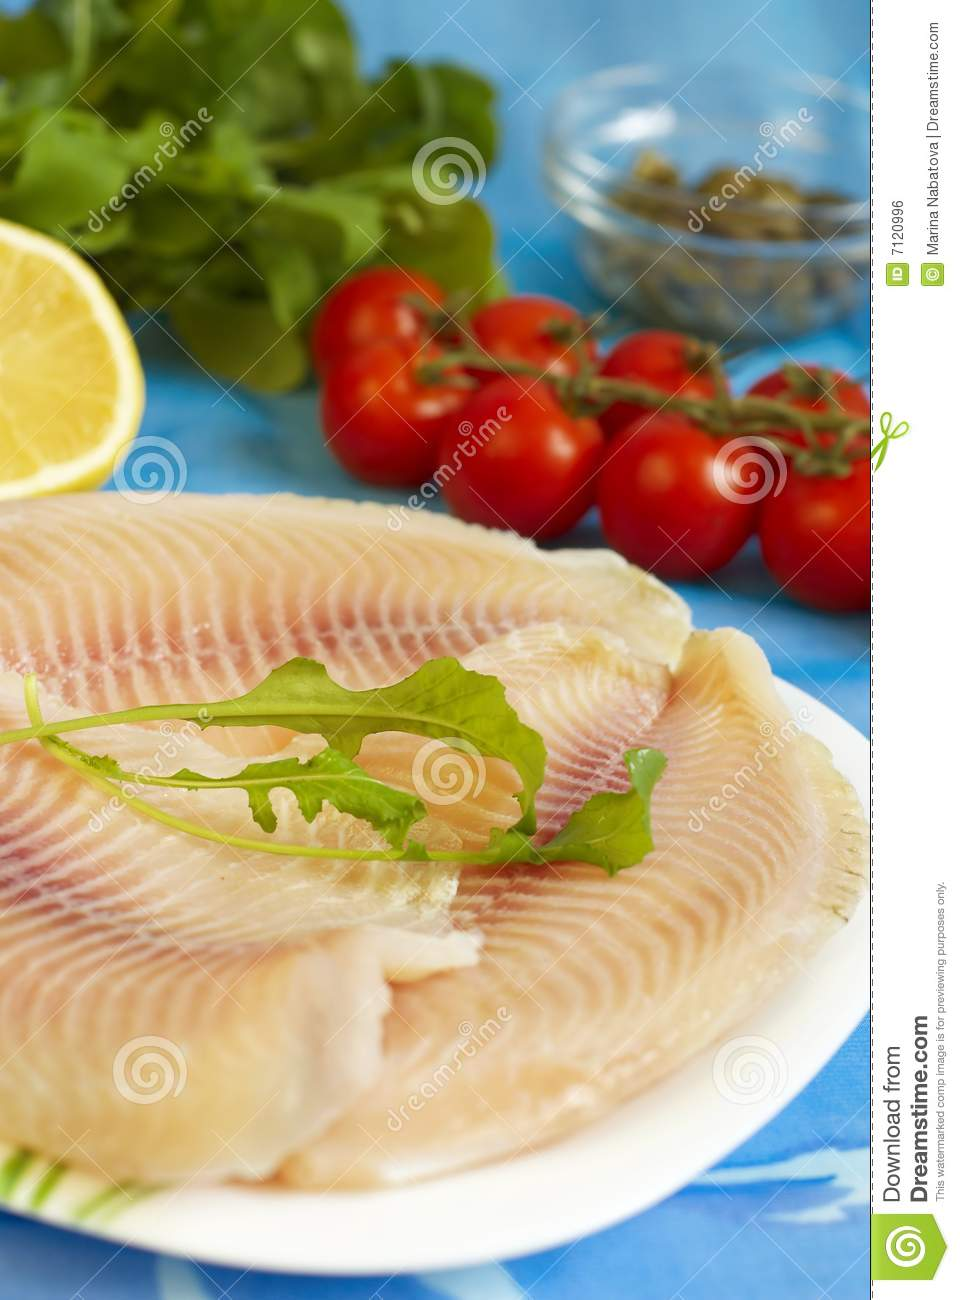 Tilapia fish ready to cook royalty free stock image for How to make tilapia fish